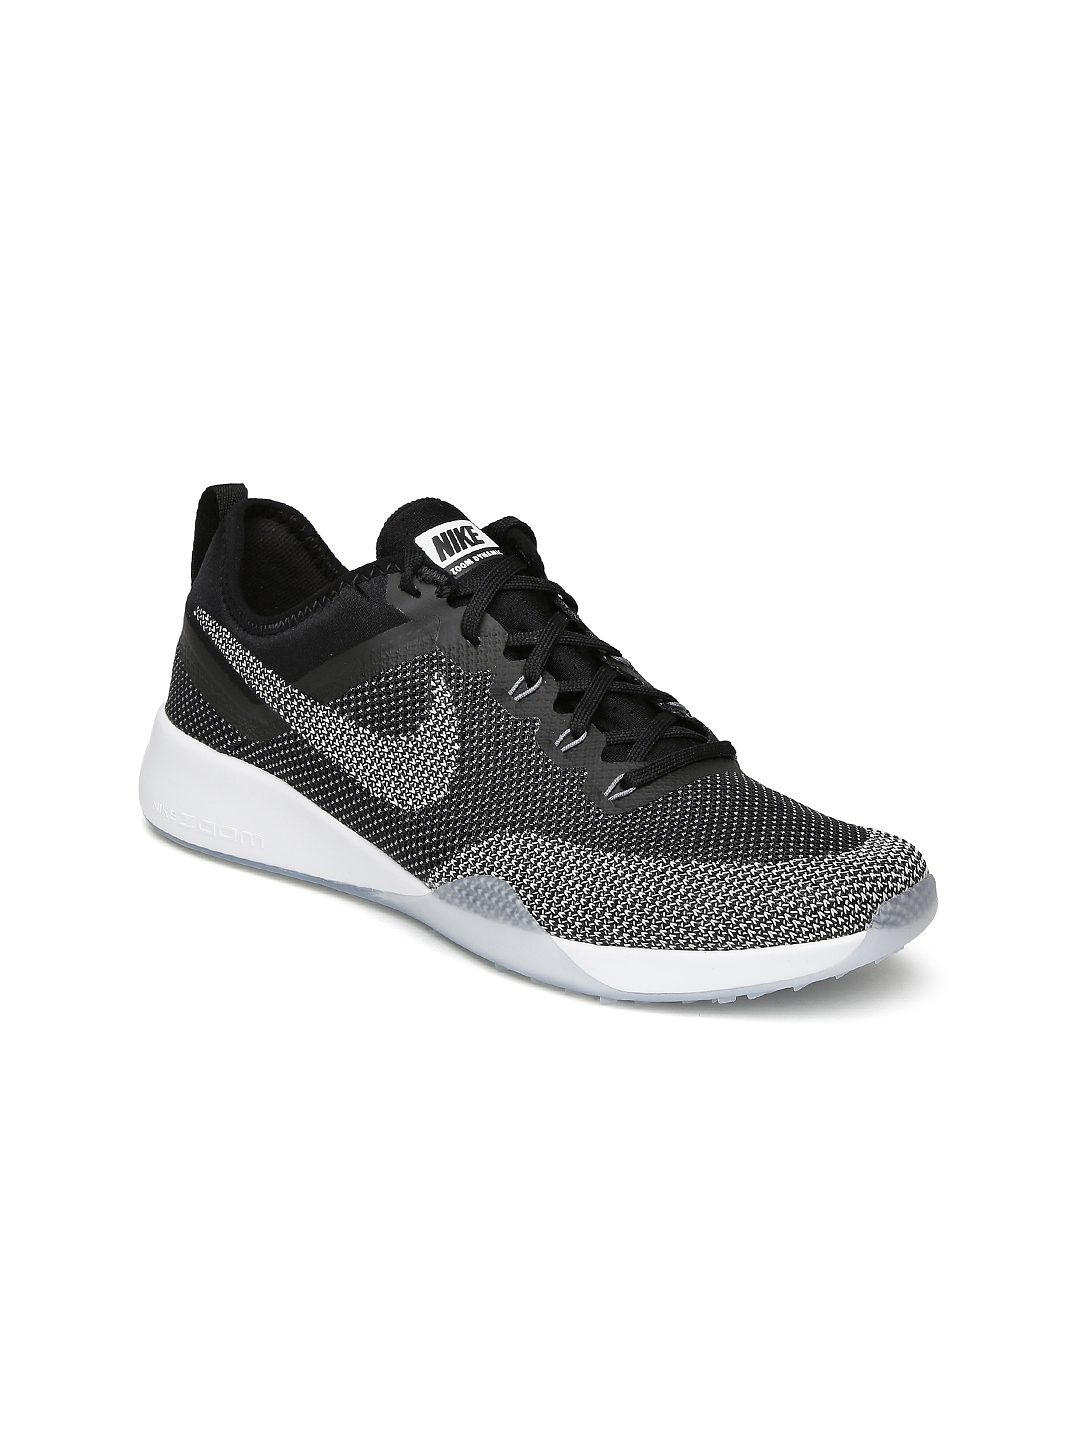 32a767a13e82 7ccd341c-119d-4ec9-981e-9ec648bd02821548918636153-Nike-Women-Black-NIKE-AIR- ZOOM-TR-DYNAMIC-Training-Shoes-622-1.jpg